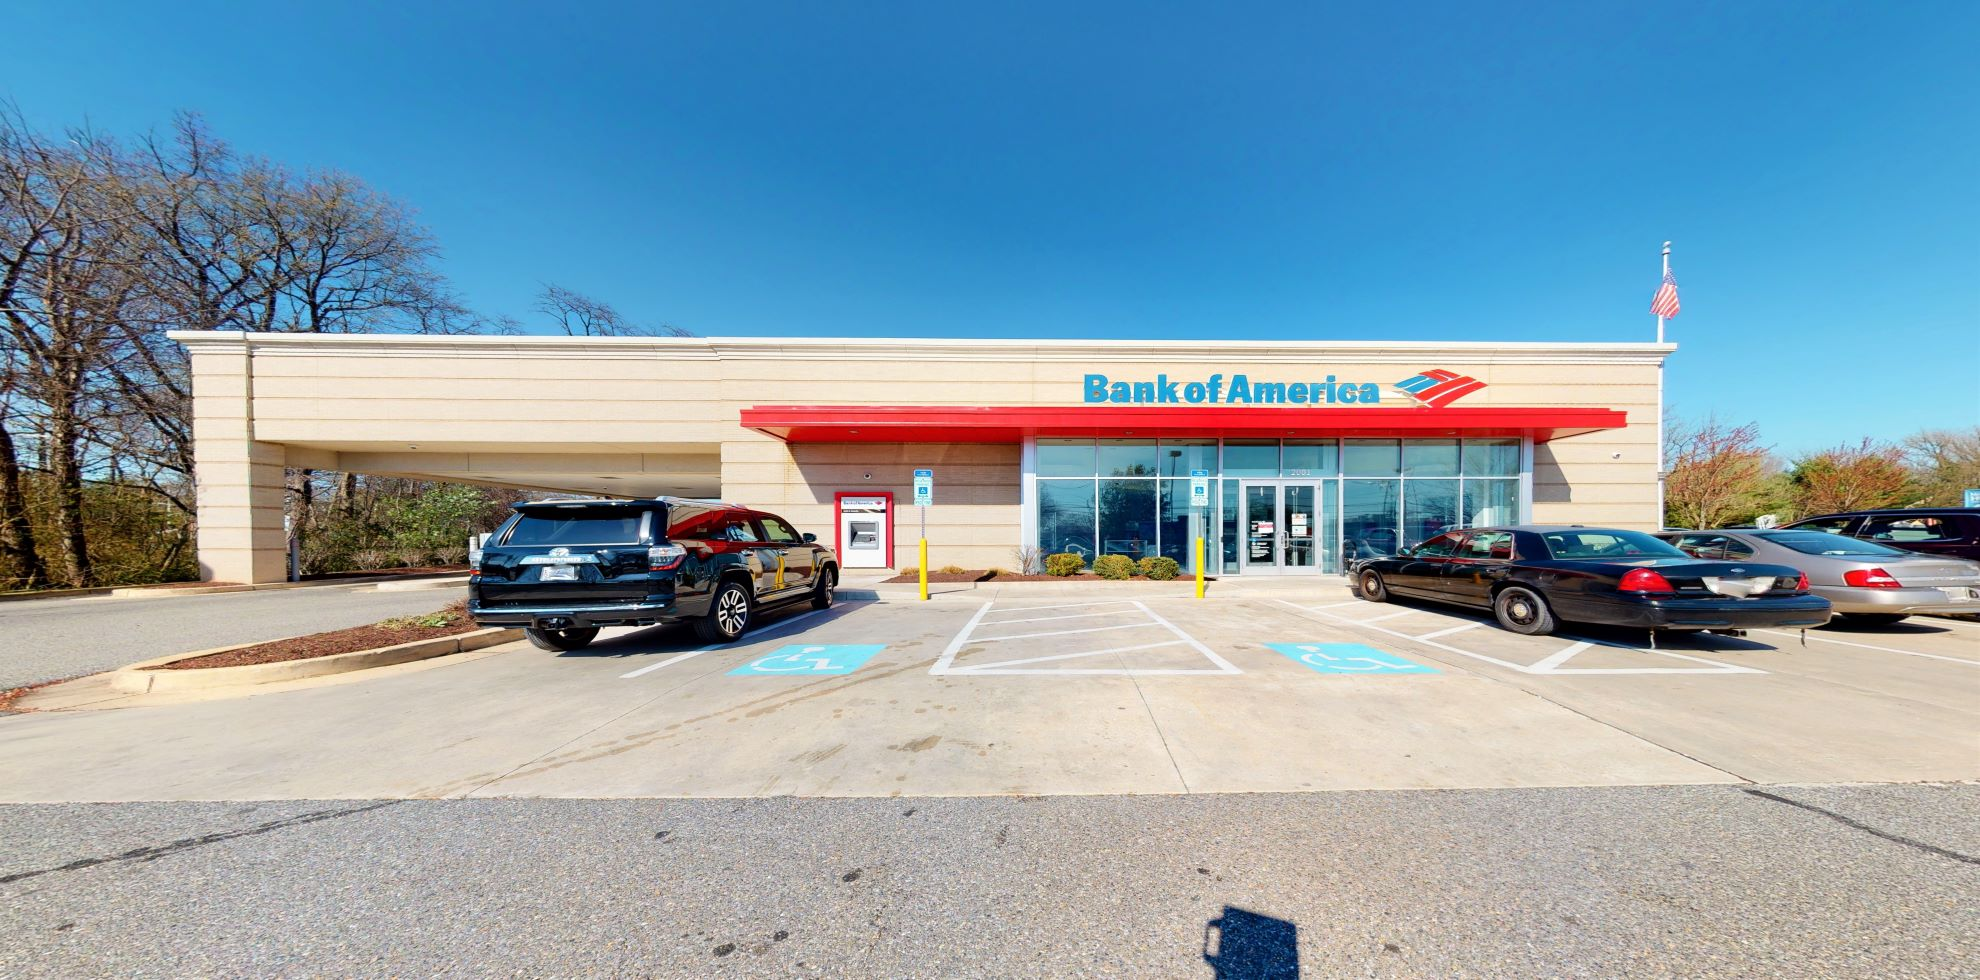 Bank of America financial center with drive-thru ATM   2001 Davidsonville Rd, Crofton, MD 21114